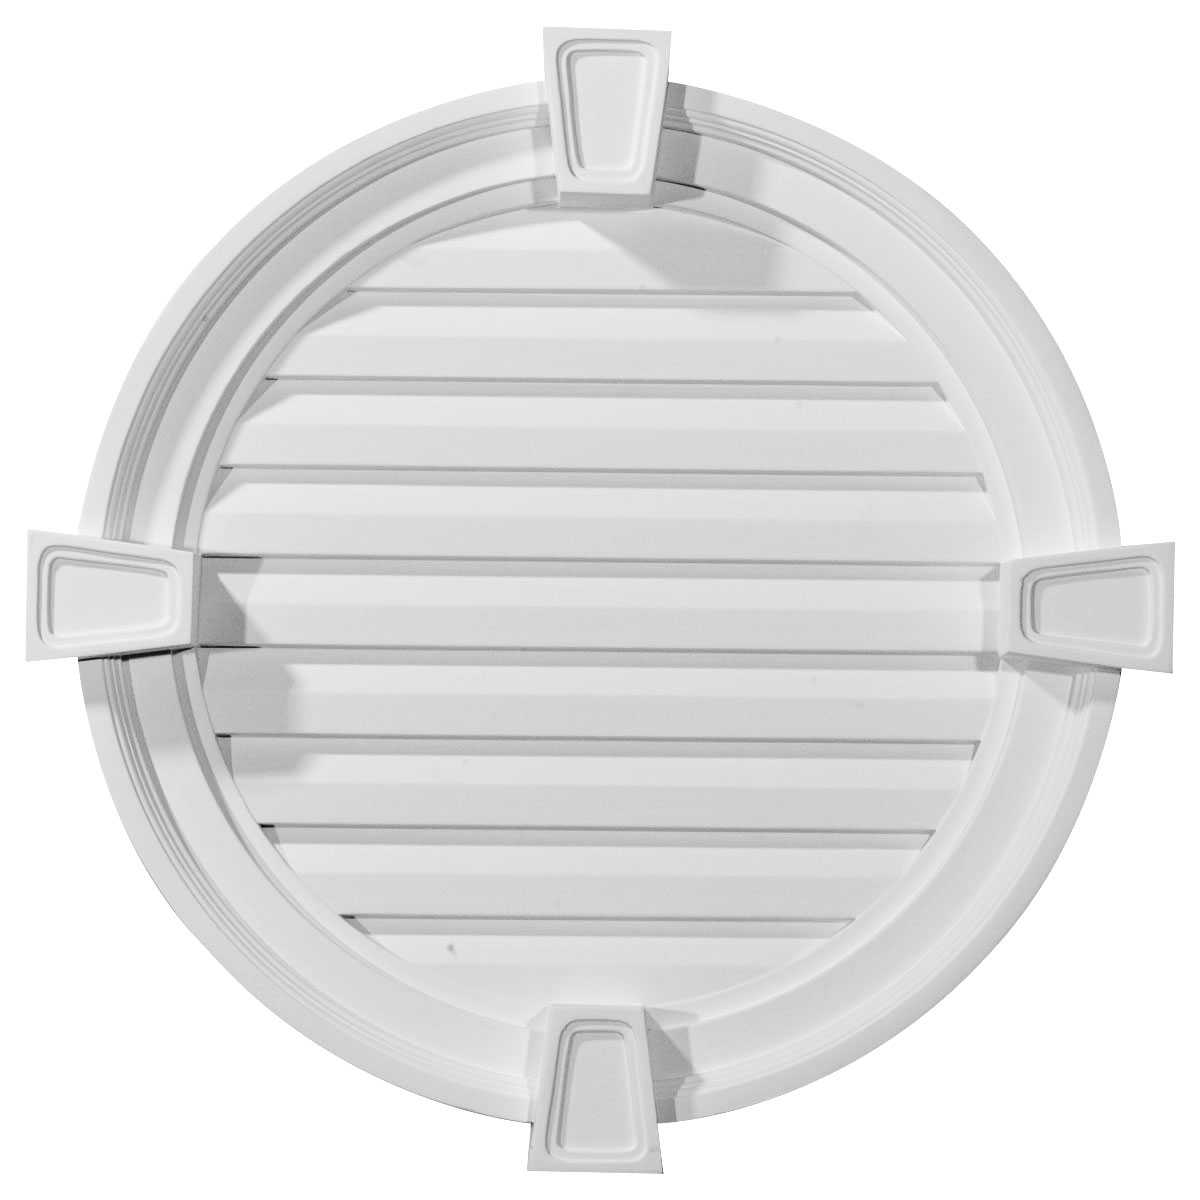 22'W x 22'H x 2 1/8'P, Round Gable Vent with Keystones, Functional